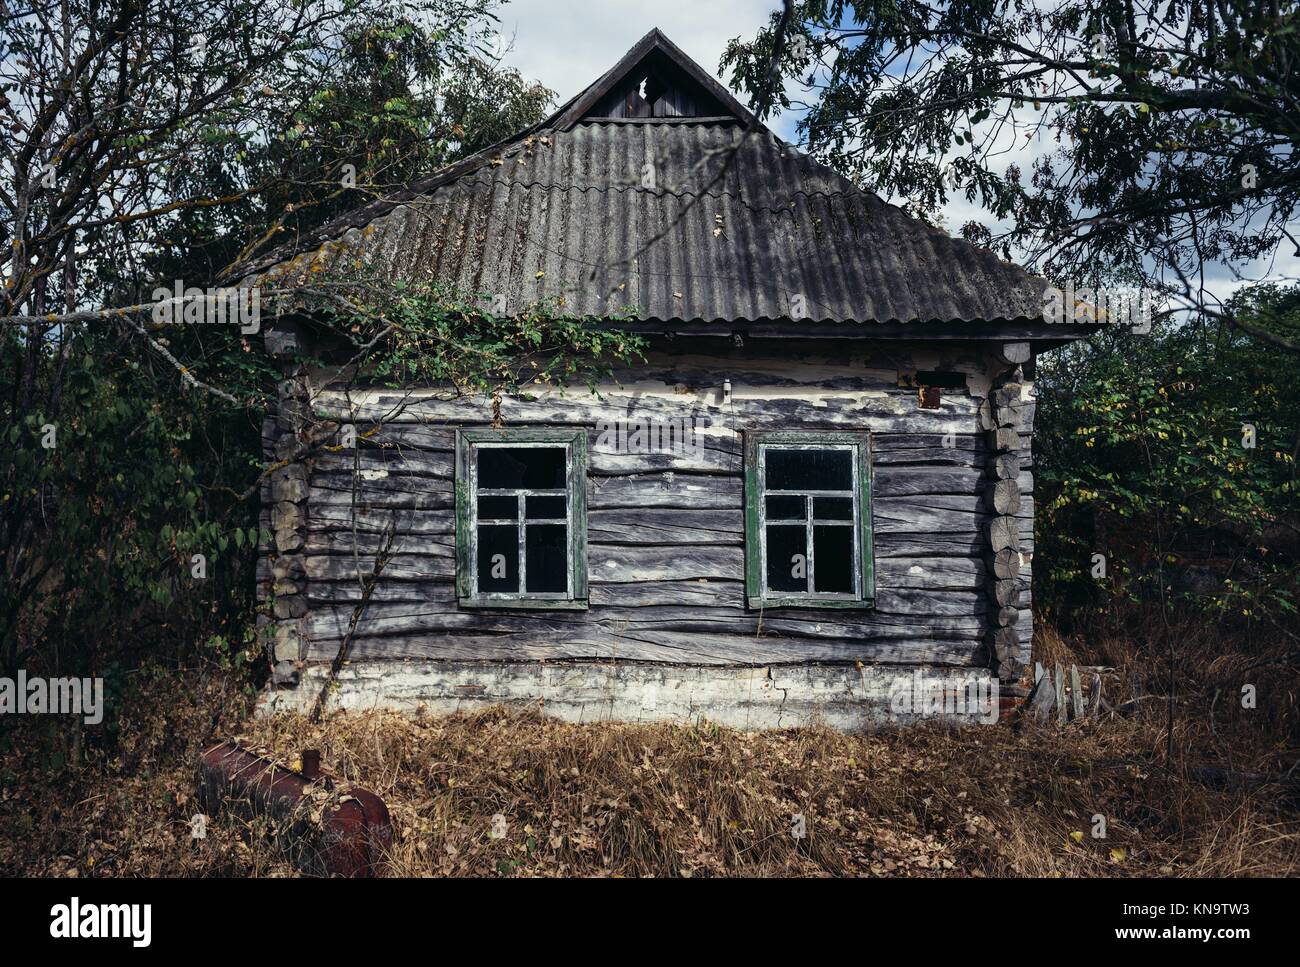 Cottage in Mashevo abandoned village of Chernobyl Nuclear Power Plant Zone of Alienation area around nuclear reactor - Stock Image